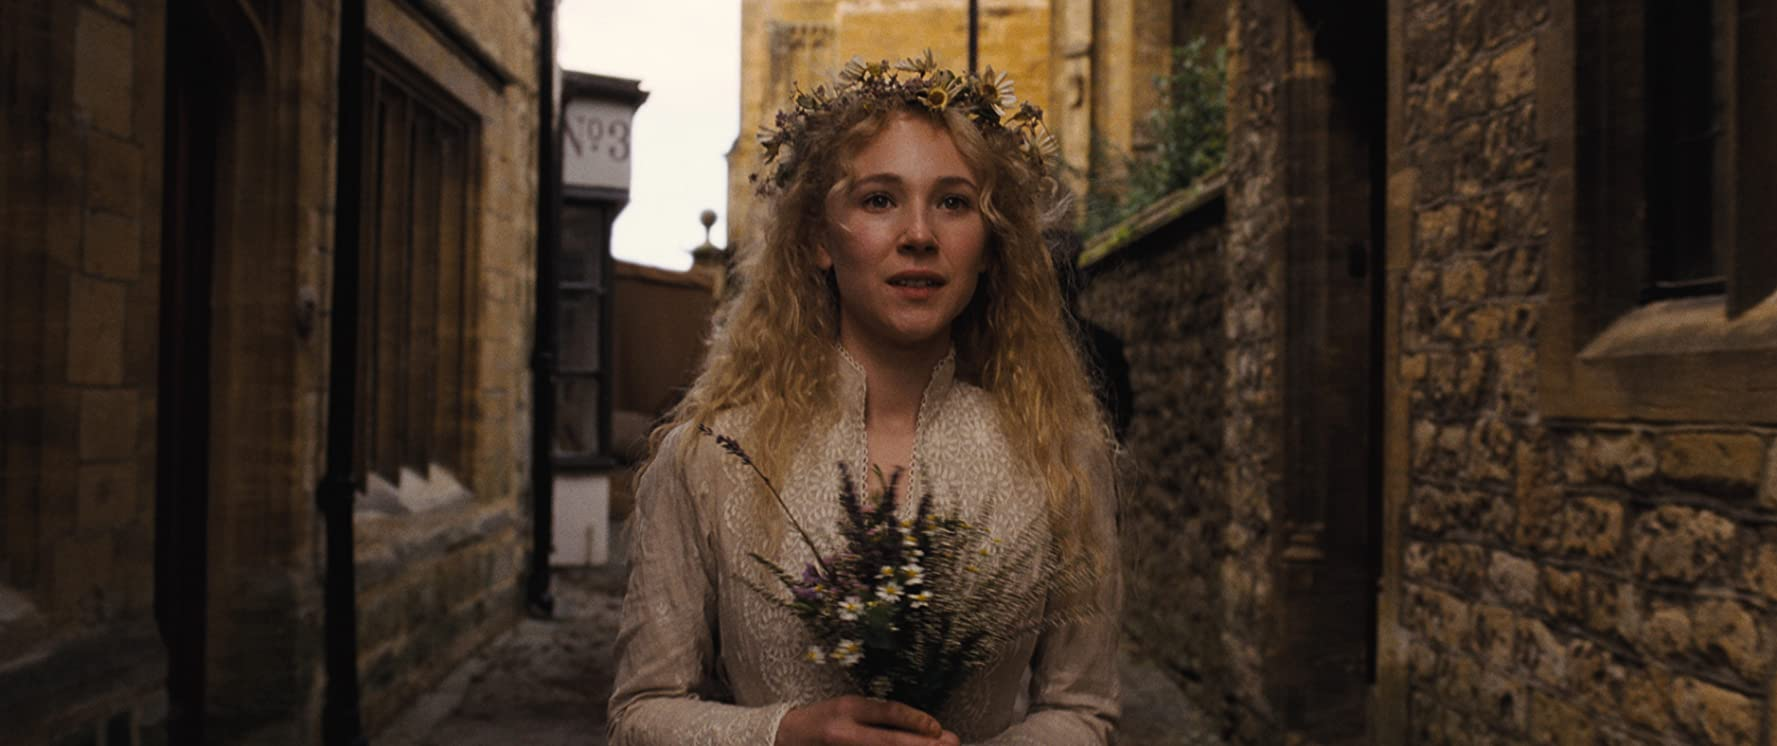 Juno Temple in Far from the Madding Crowd (2015)